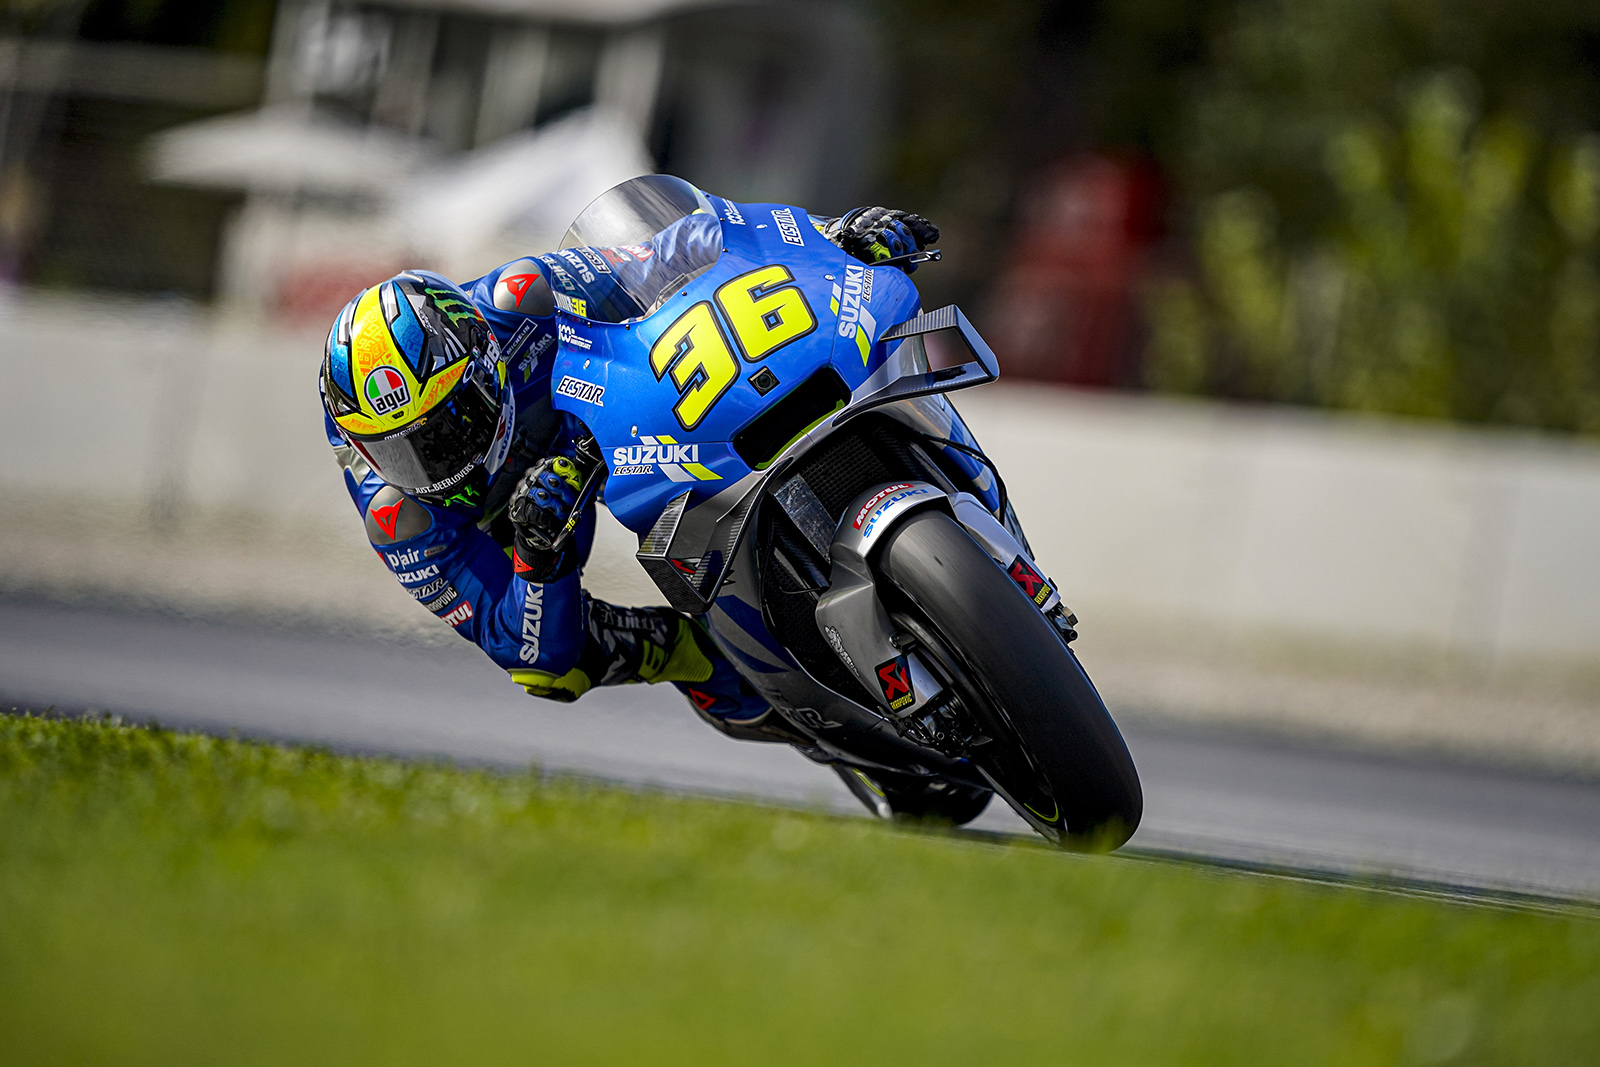 JOAN MIR TO RACE WITH NUMBER 36 FOR 2021 SEASON